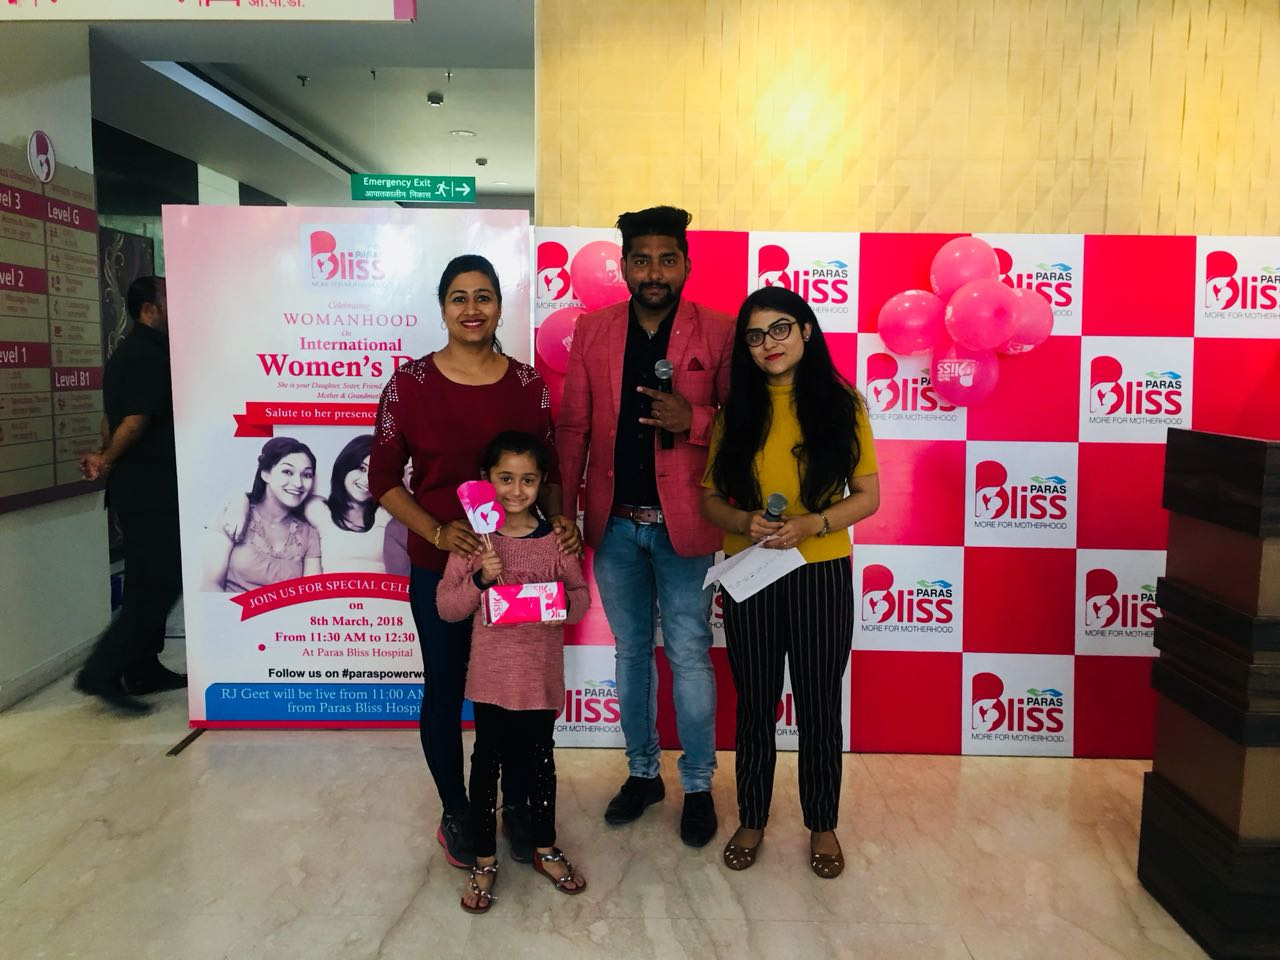 International Women's Day with Host of Activities at Paras Bliss, Panchkula